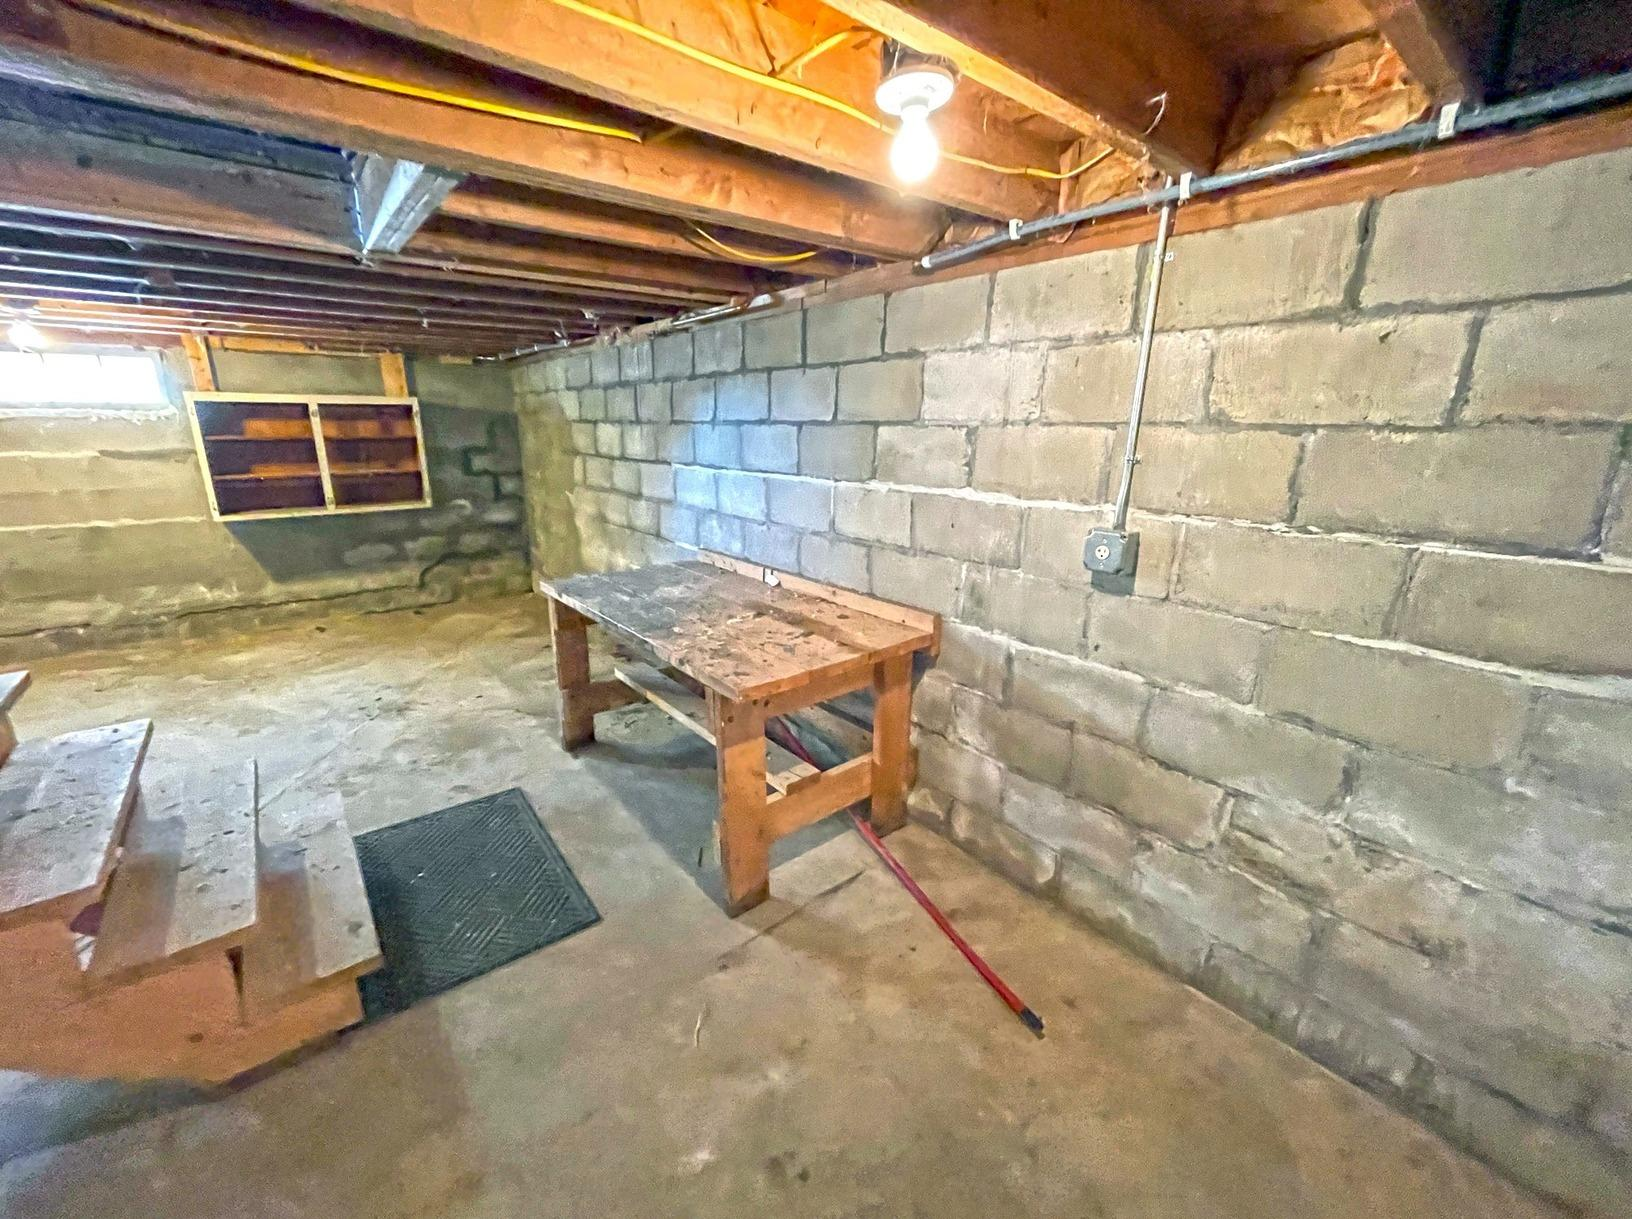 Basement Wall Problems solved in Middlebury, Vermont. - Before Photo